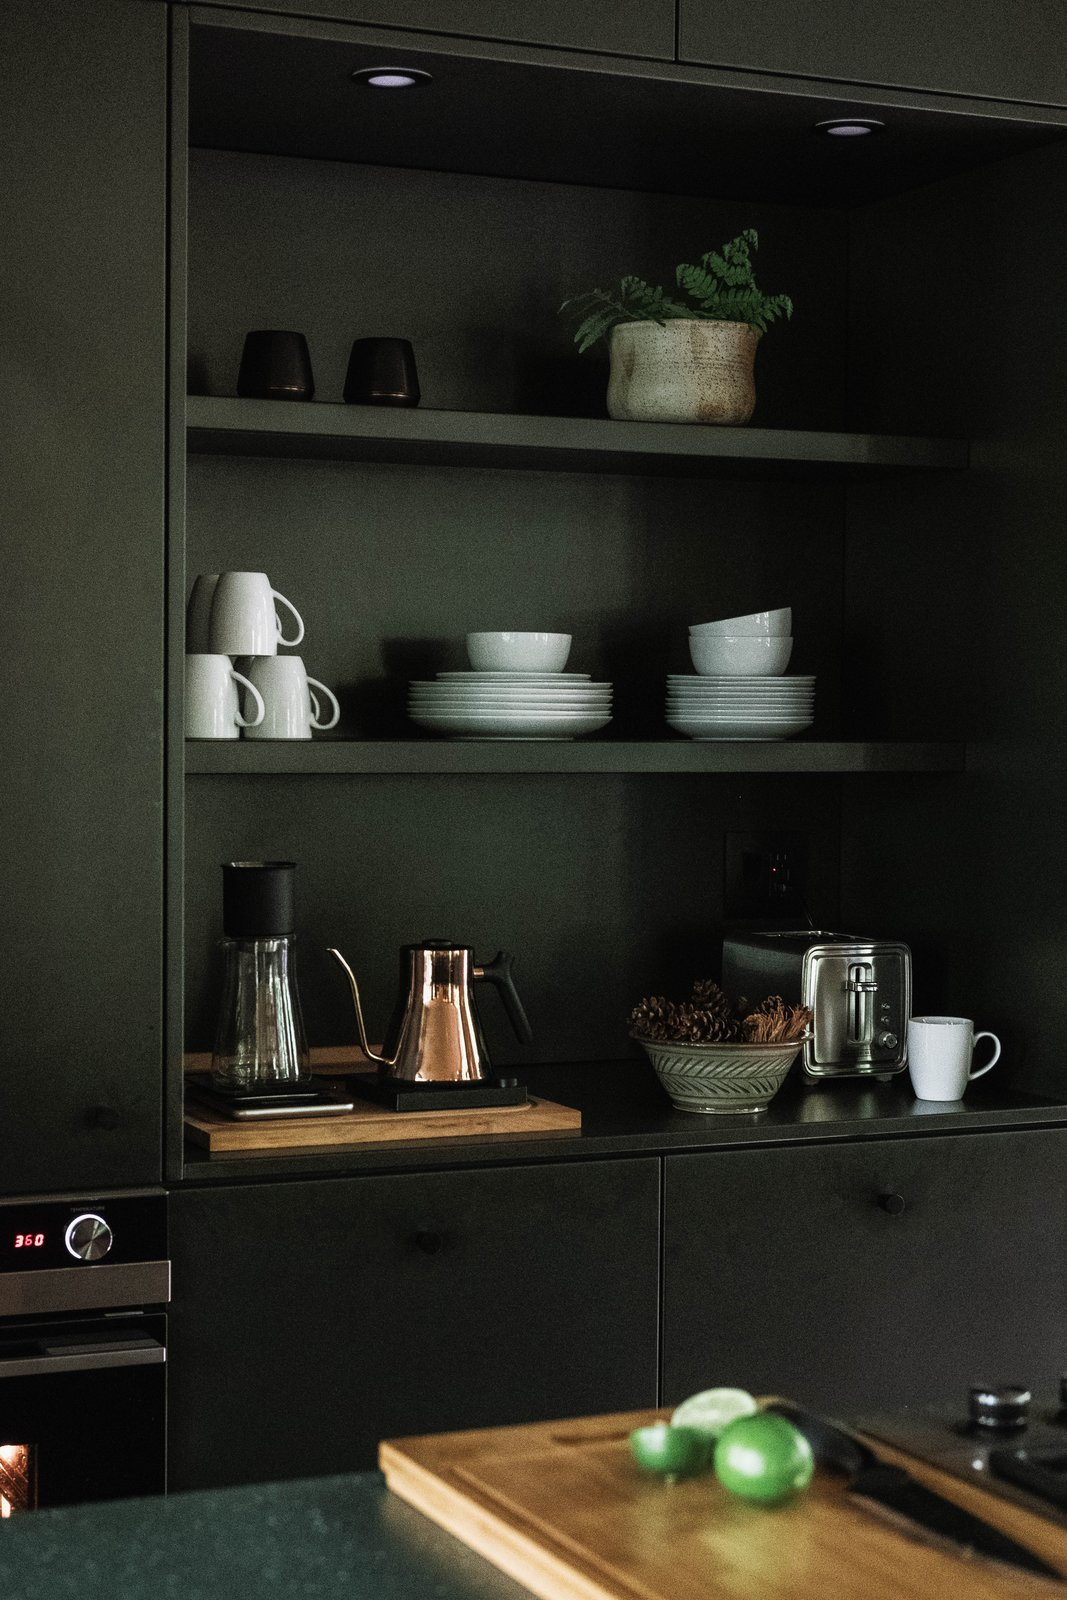 Kitchen, Undermount Sink, Refrigerator, Ceiling Lighting, Cooktops, Medium Hardwood Floor, Colorful Cabinet, and Wall Oven Hygge Supply cabinets with shelving inserts in kitchen.  Best Photos from Birch Le Collaboration House